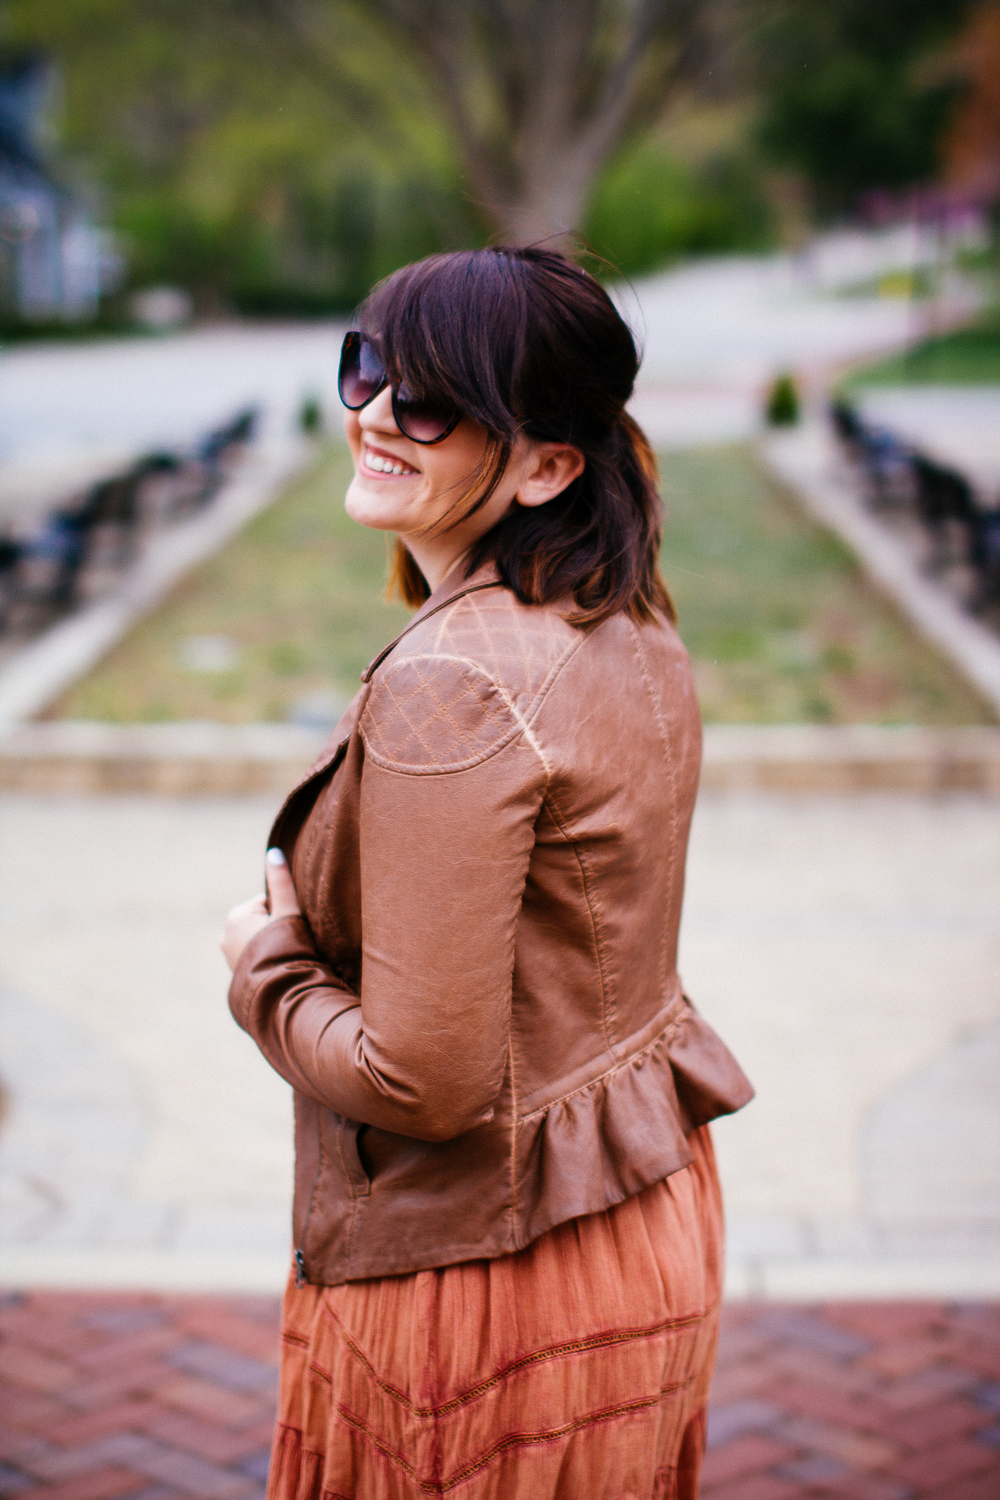 Ruffle Anthropologie Leather Jacket www.chelceytate.com